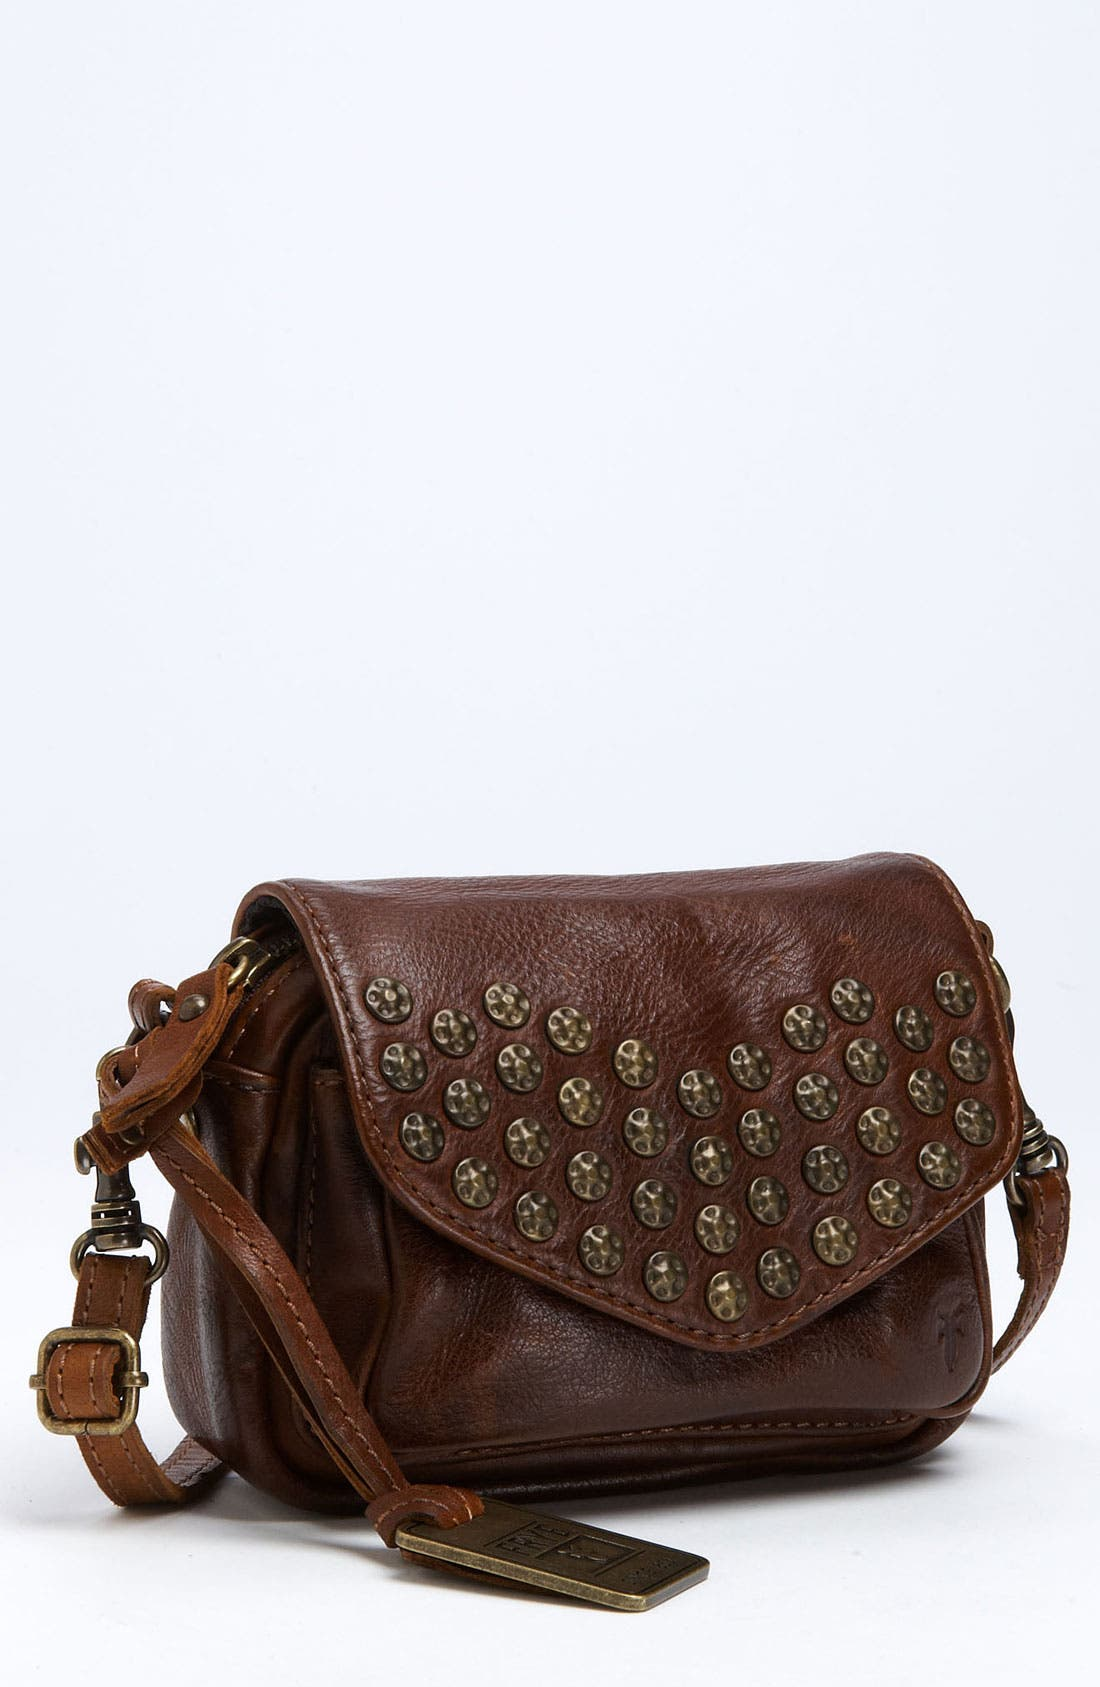 Alternate Image 1 Selected - Frye 'Brooke - Mini' Crossbody Bag